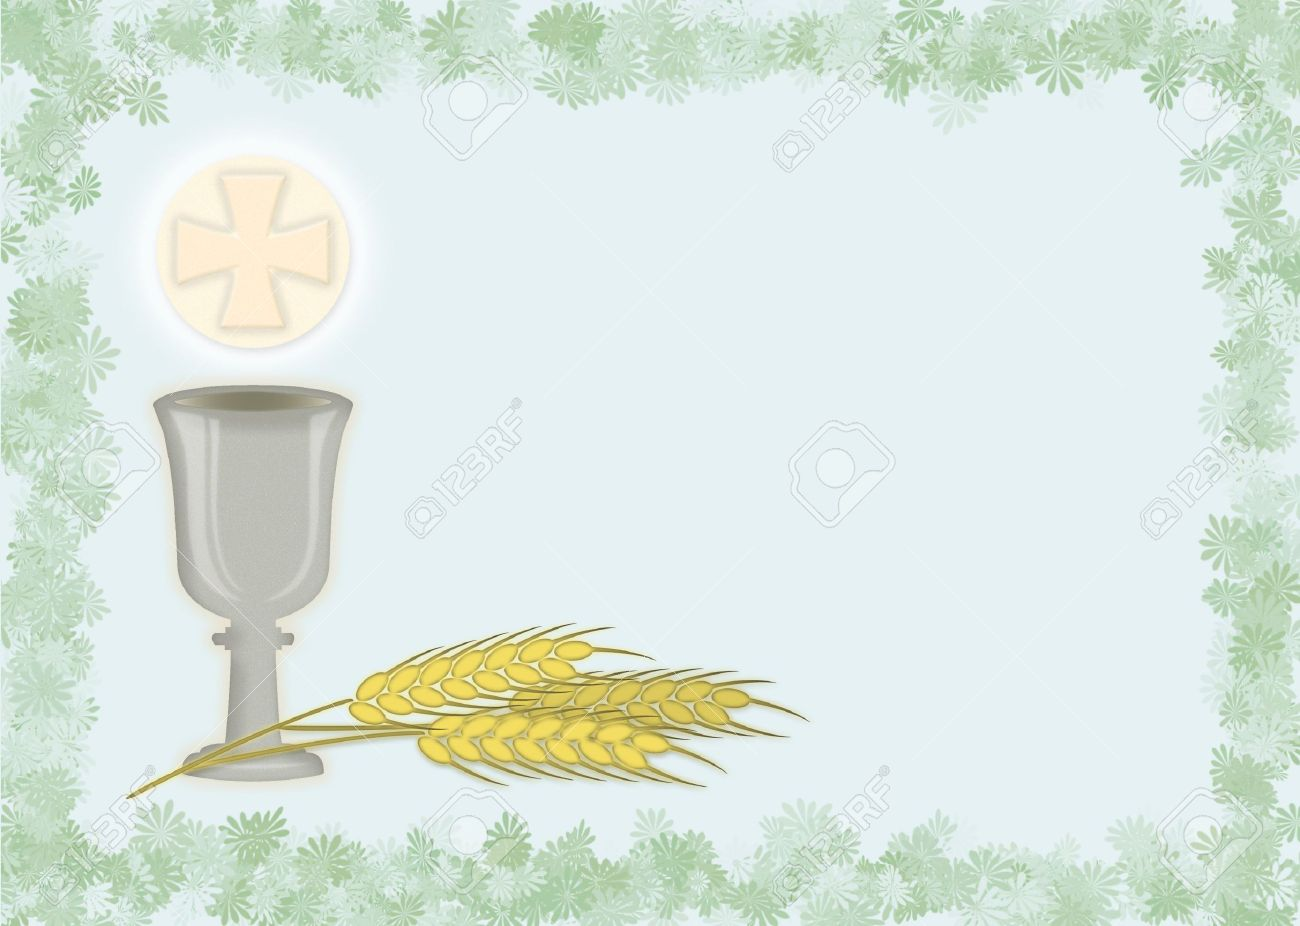 Nba Wallpaper Iphone Download First Holy Communion Wallpaper Gallery